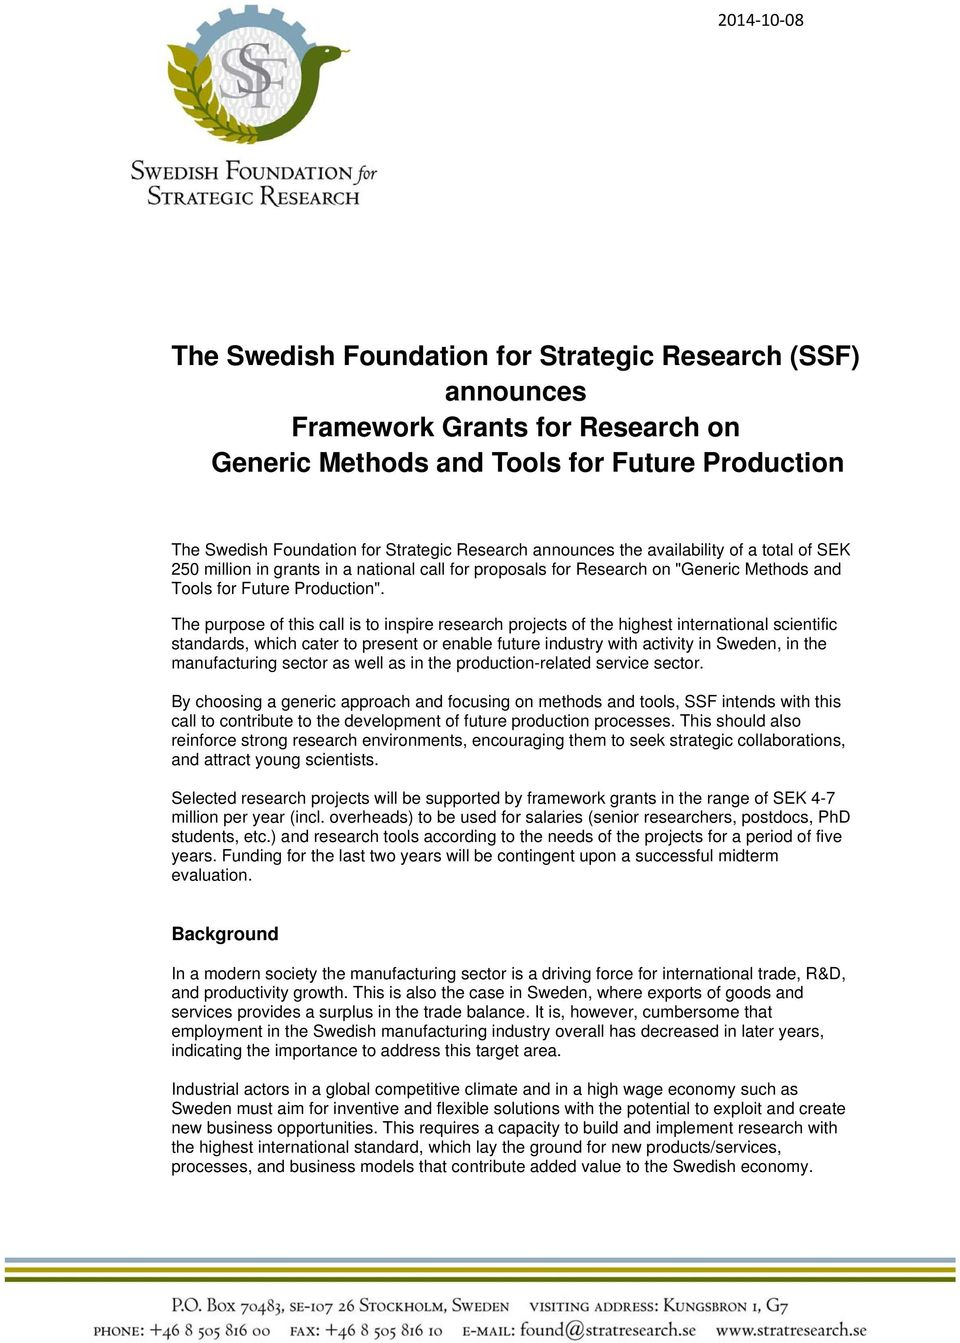 The purpose of this call is to inspire research projects of the highest international scientific standards, which cater to present or enable future industry with activity in Sweden, in the